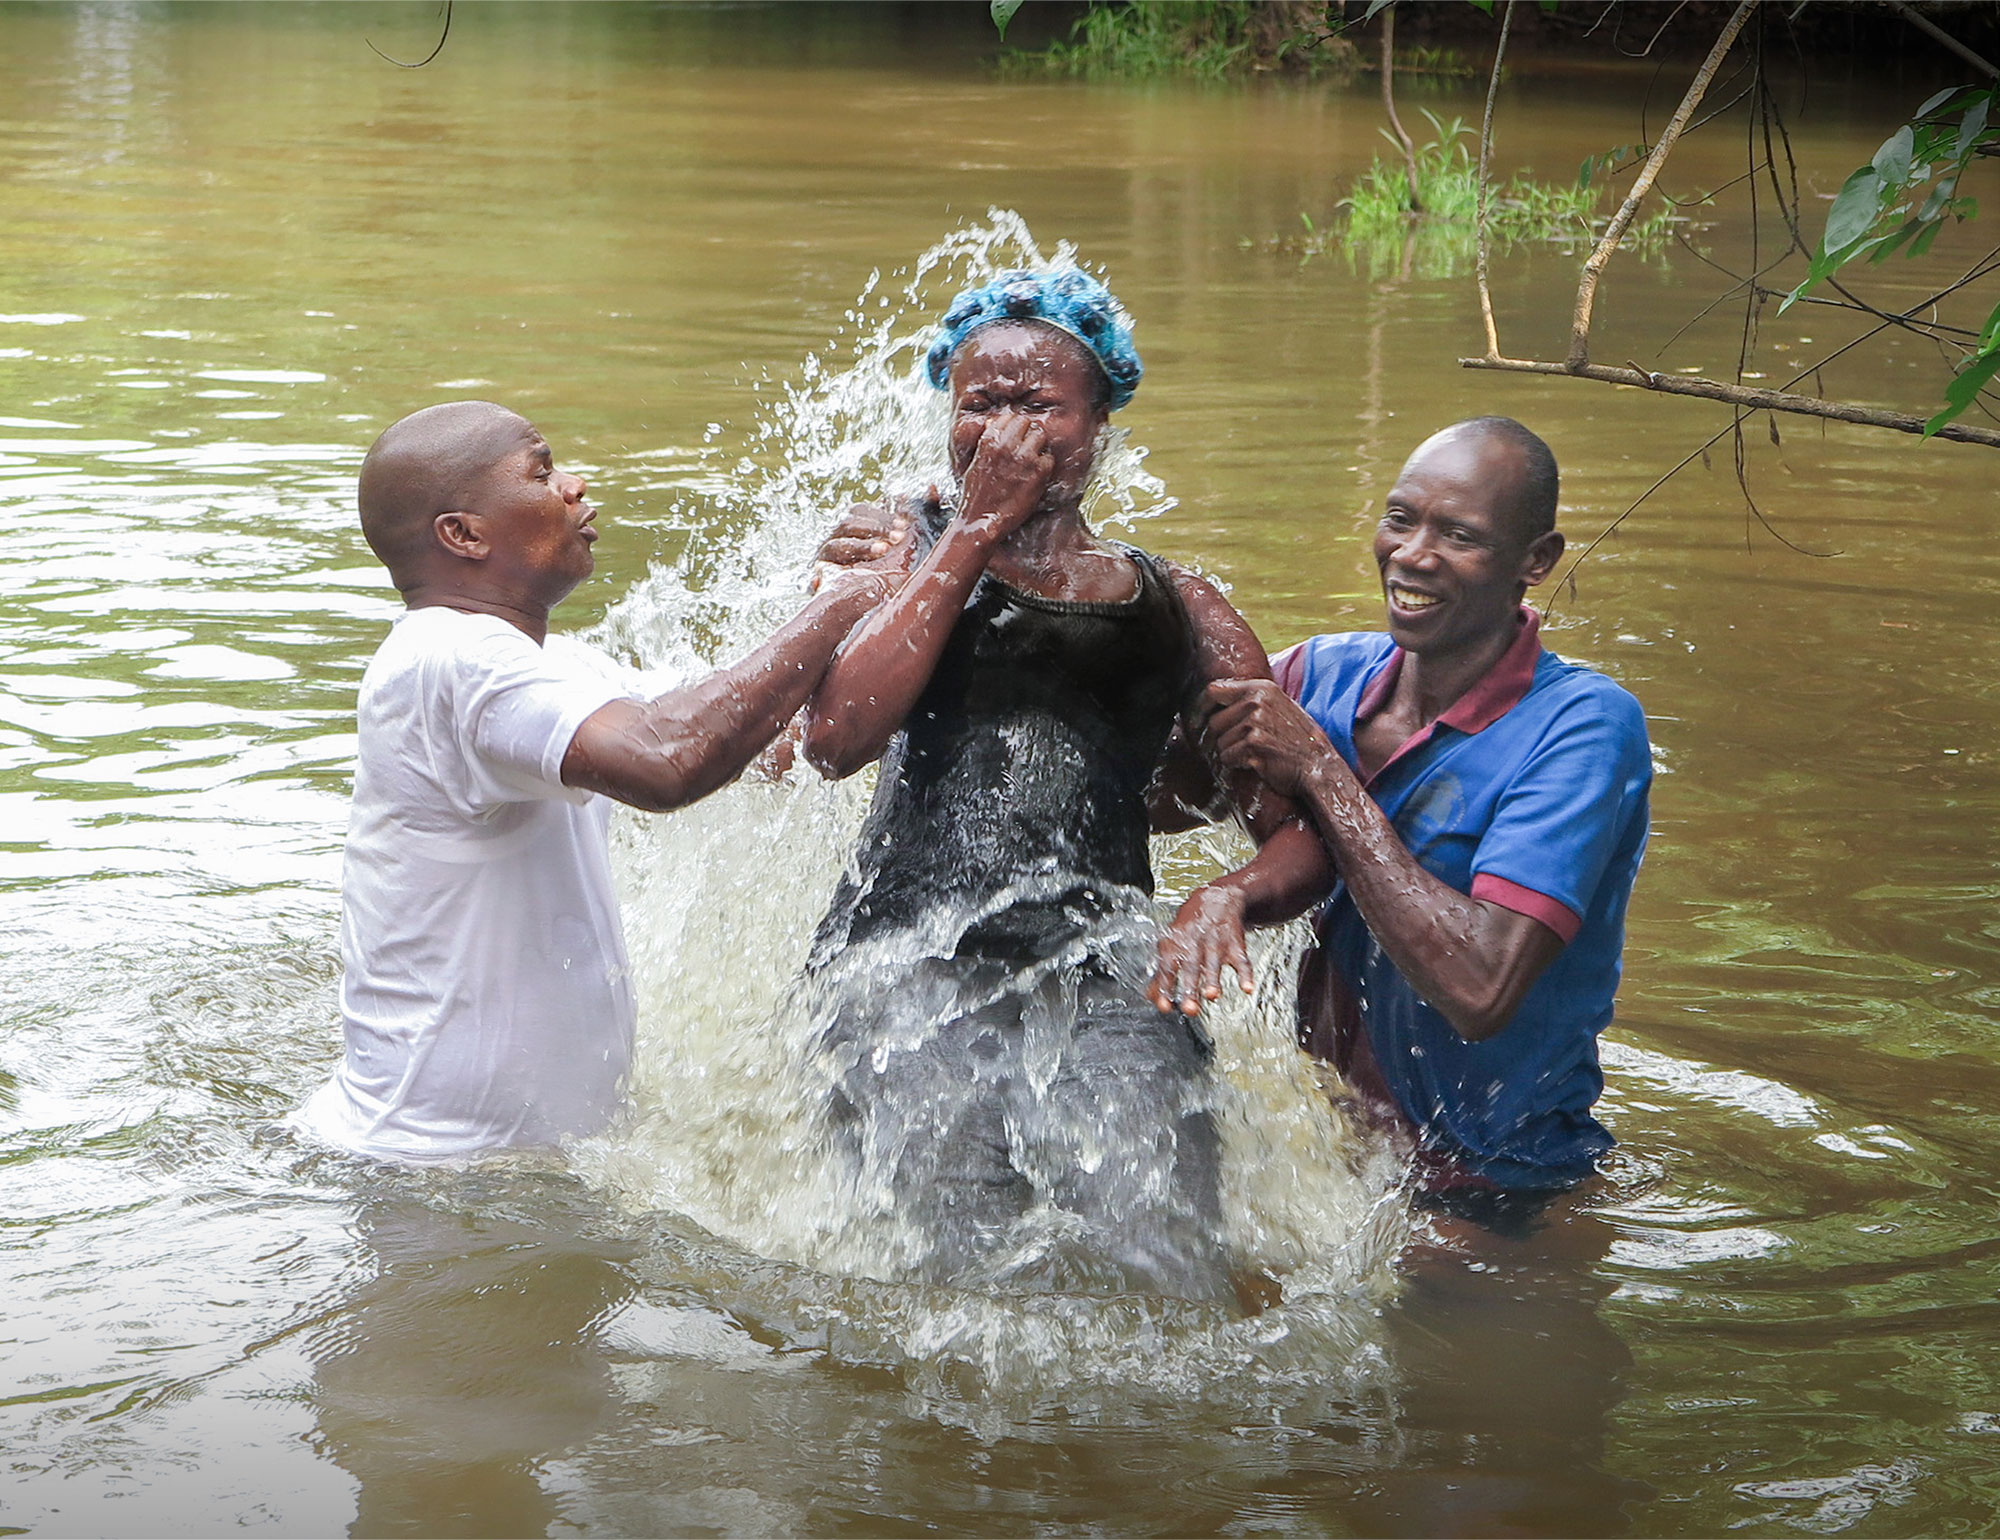 Two men helping a woman through baptism in a body of water